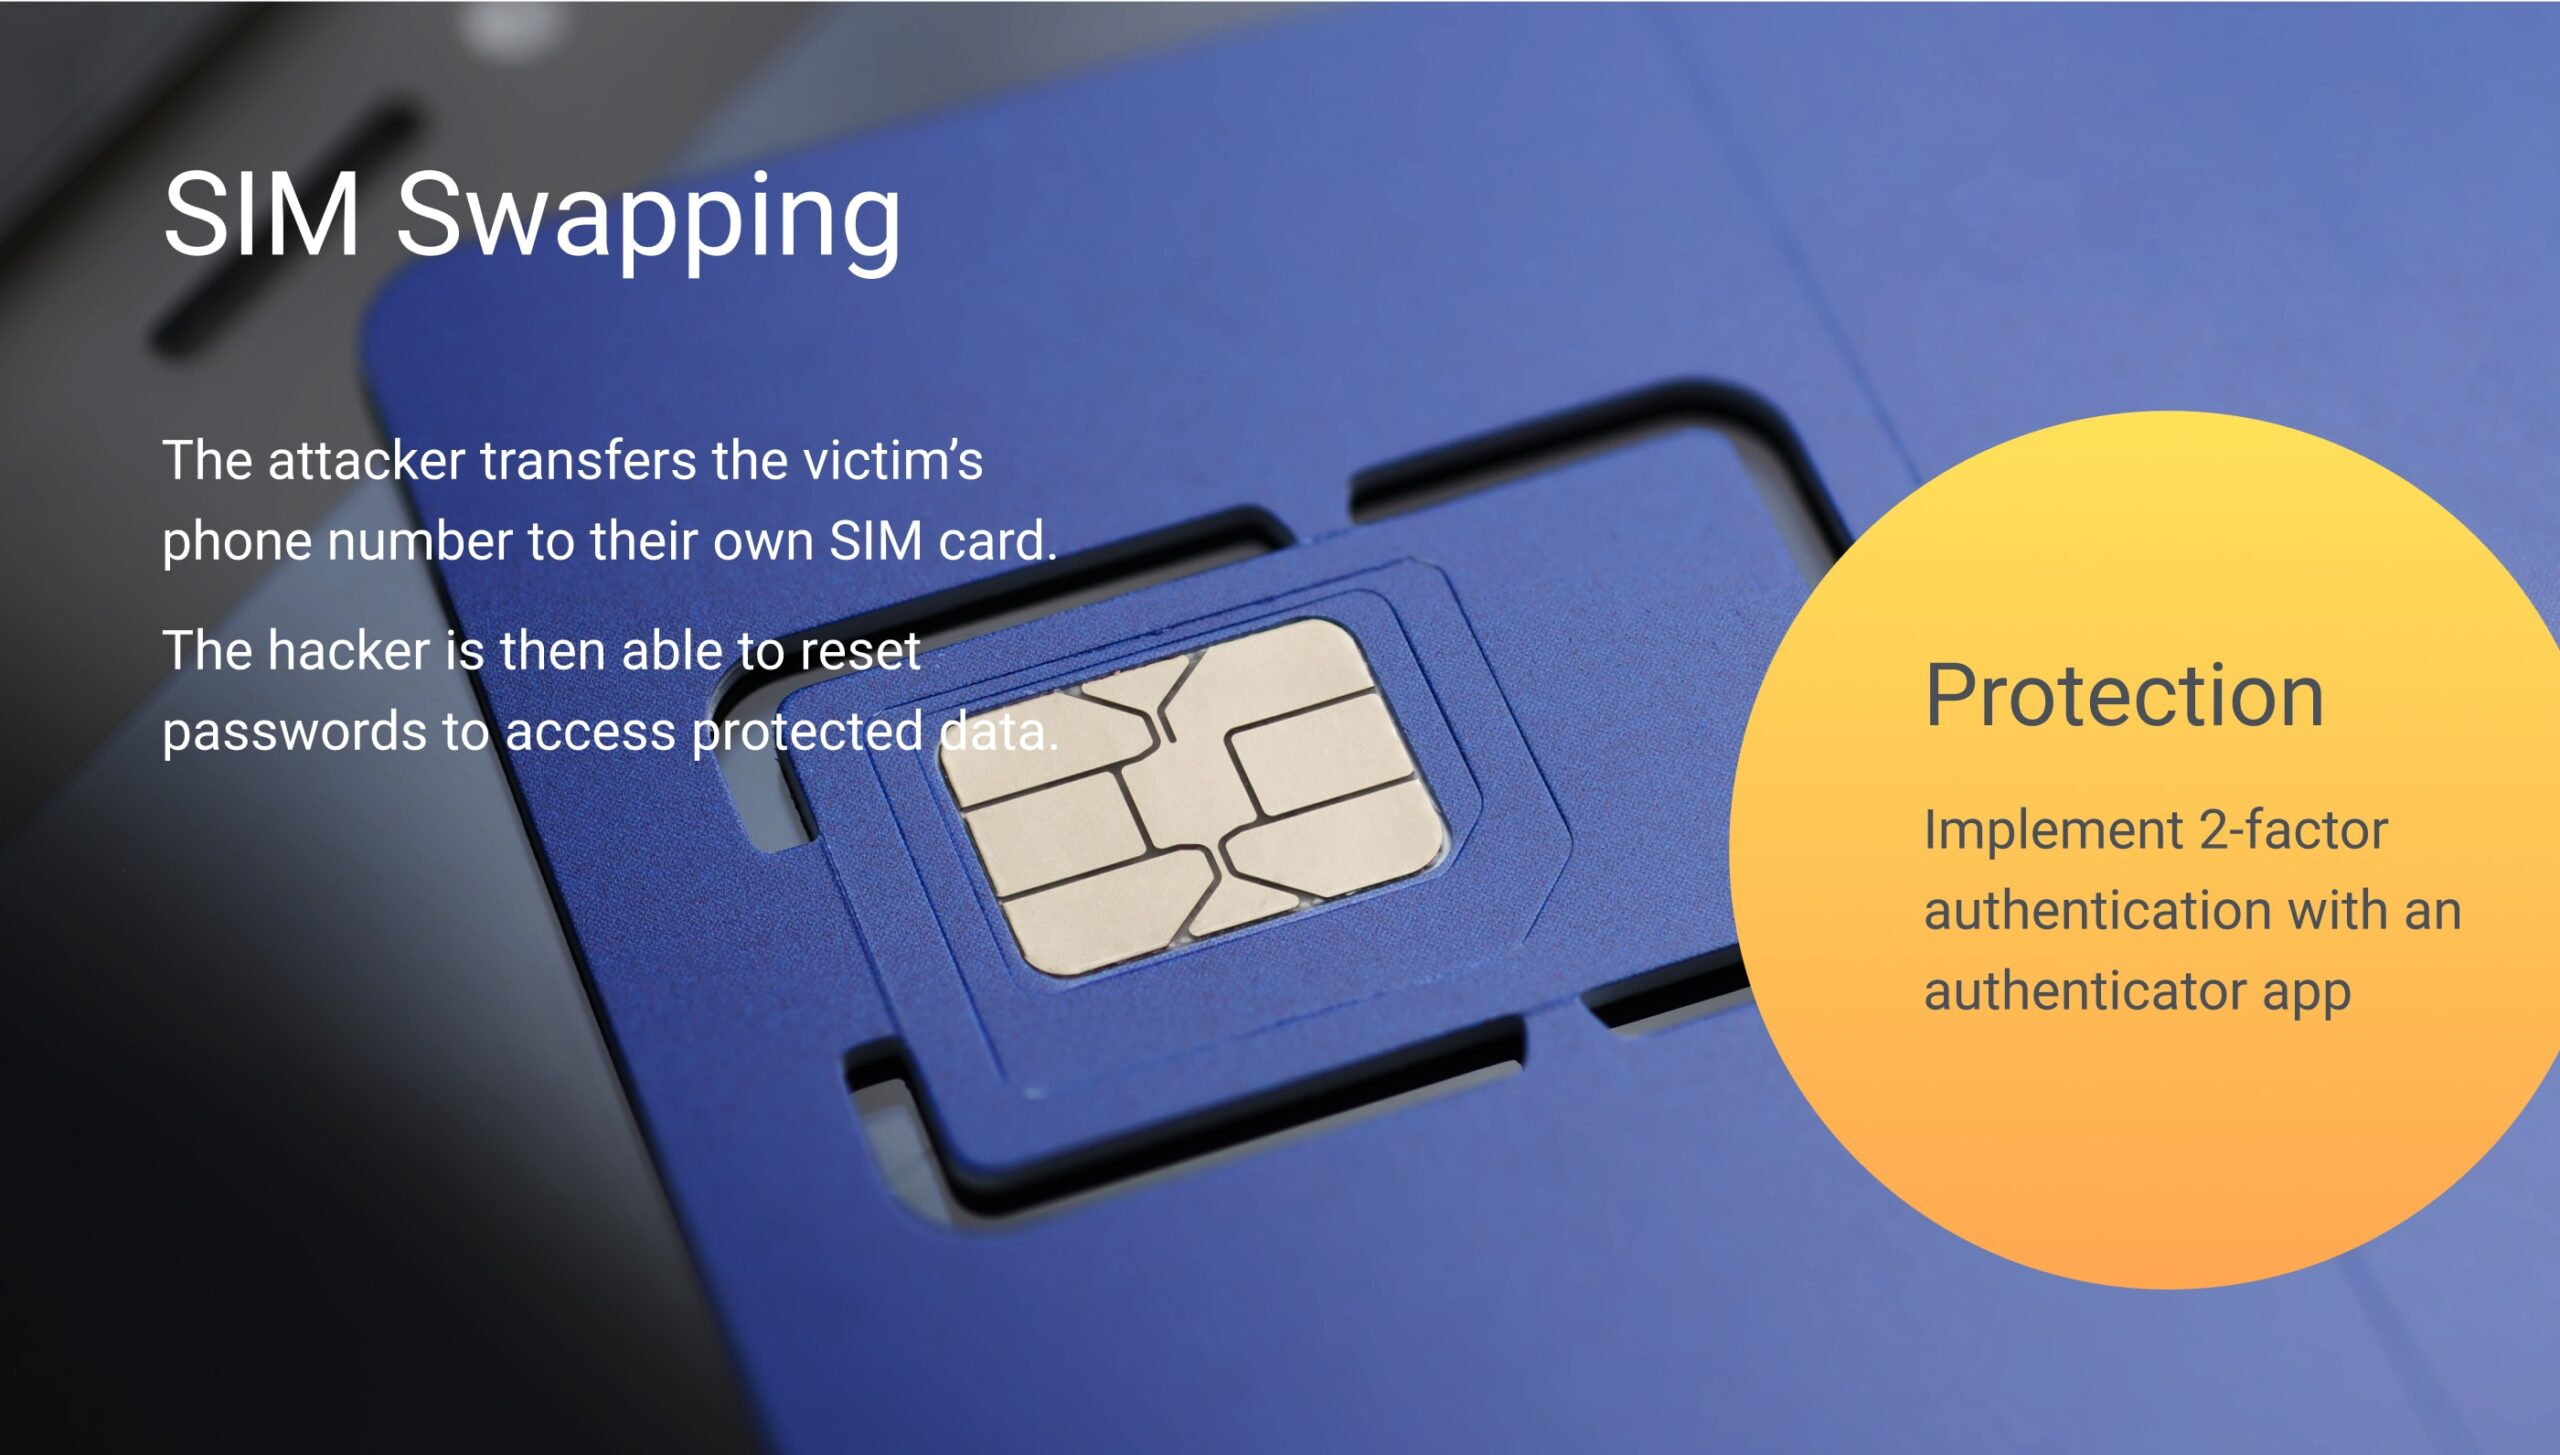 SIM swapping, also known as SIM jacking